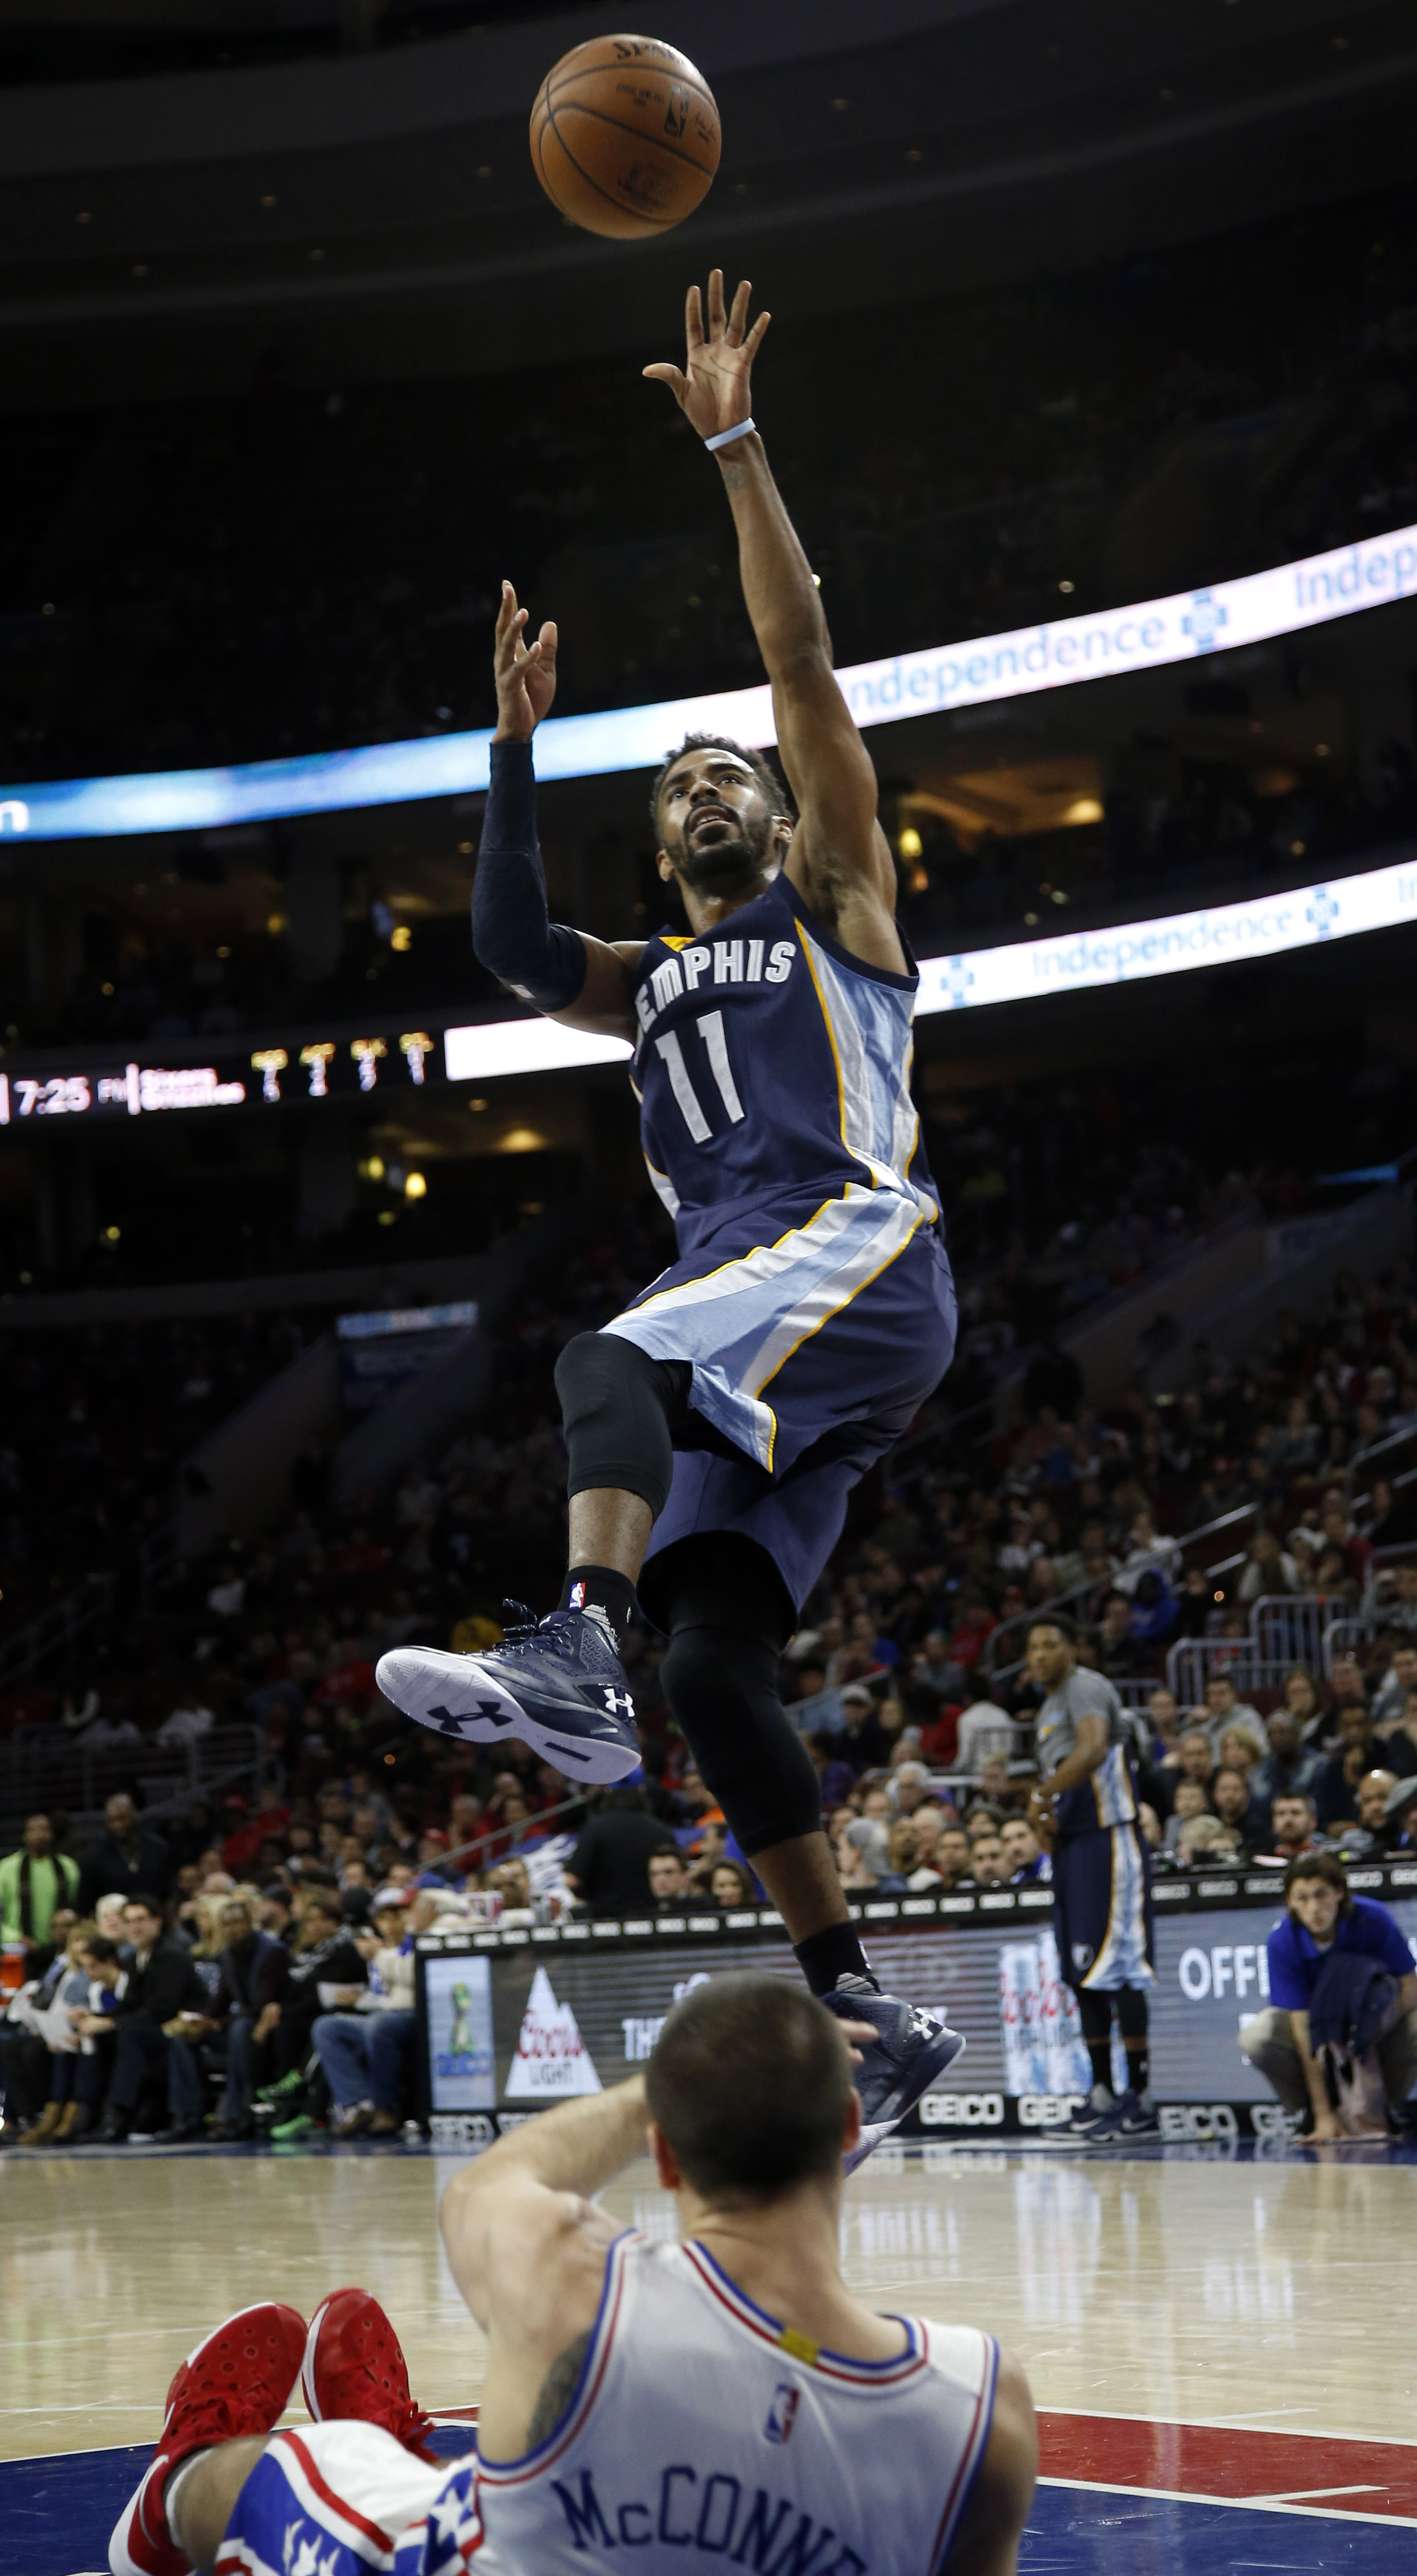 Memphis Grizzlies' Mike Conley, top, shoots against Philadelphia 76ers' T.J. McConnell during the first half of an NBA basketball game Tuesday, Dec. 22, 2015, in Philadelphia. (AP Photo/Matt Slocum)